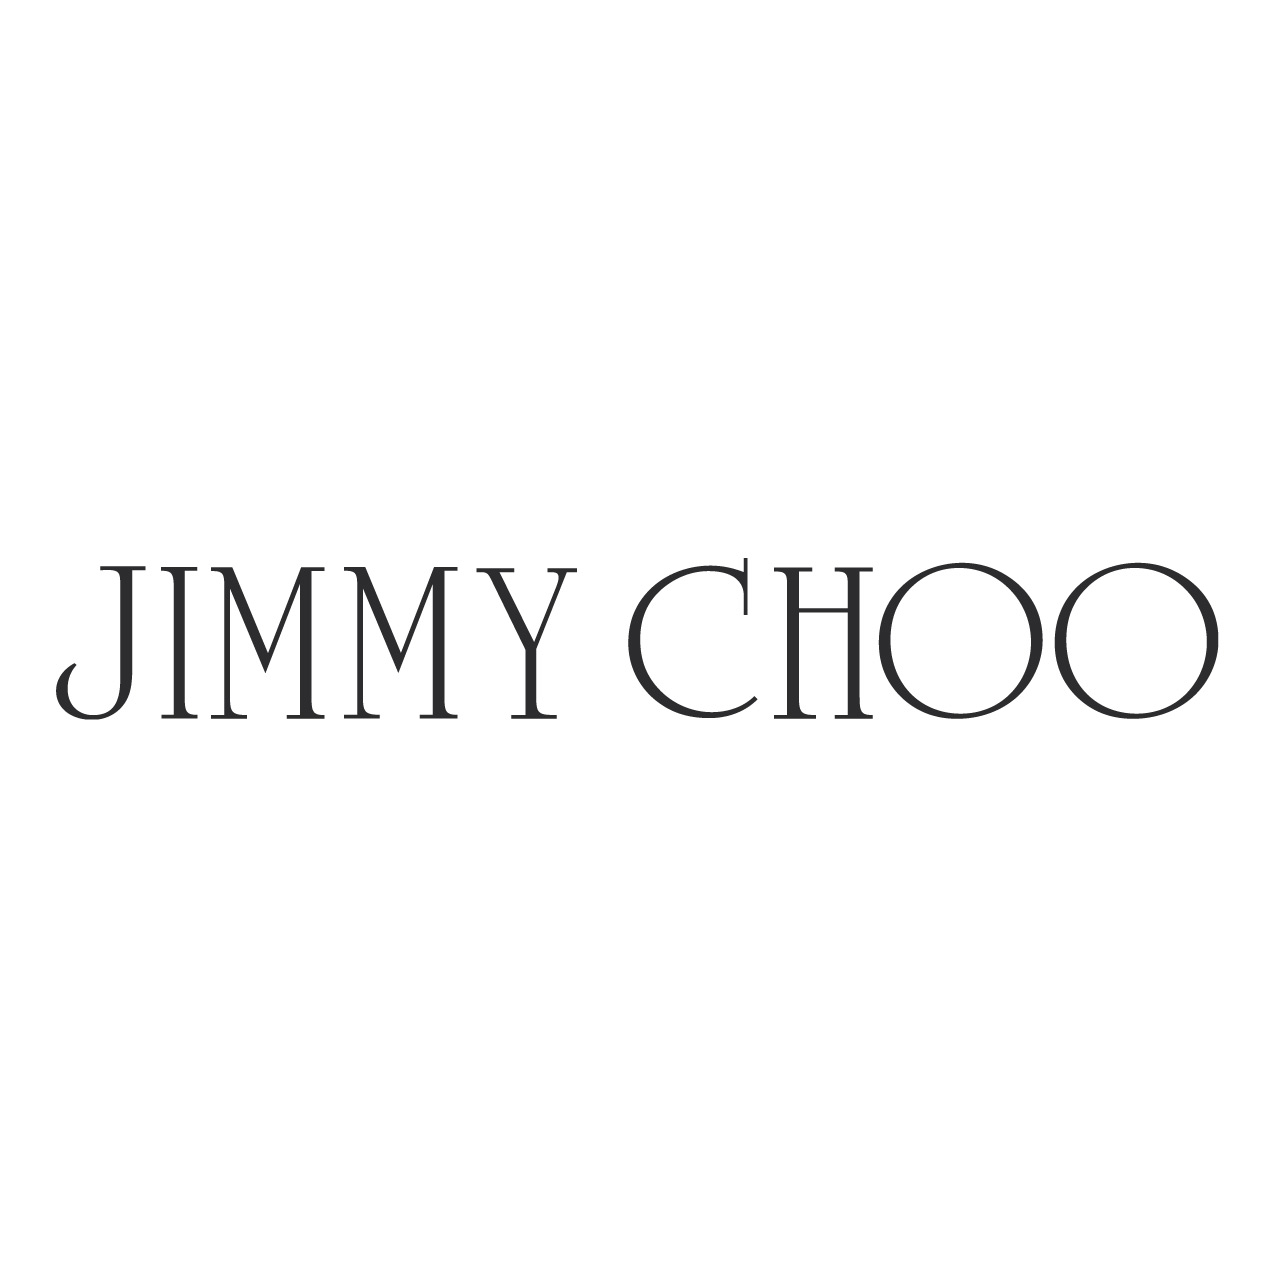 Jimmy_Choo[1].jpg